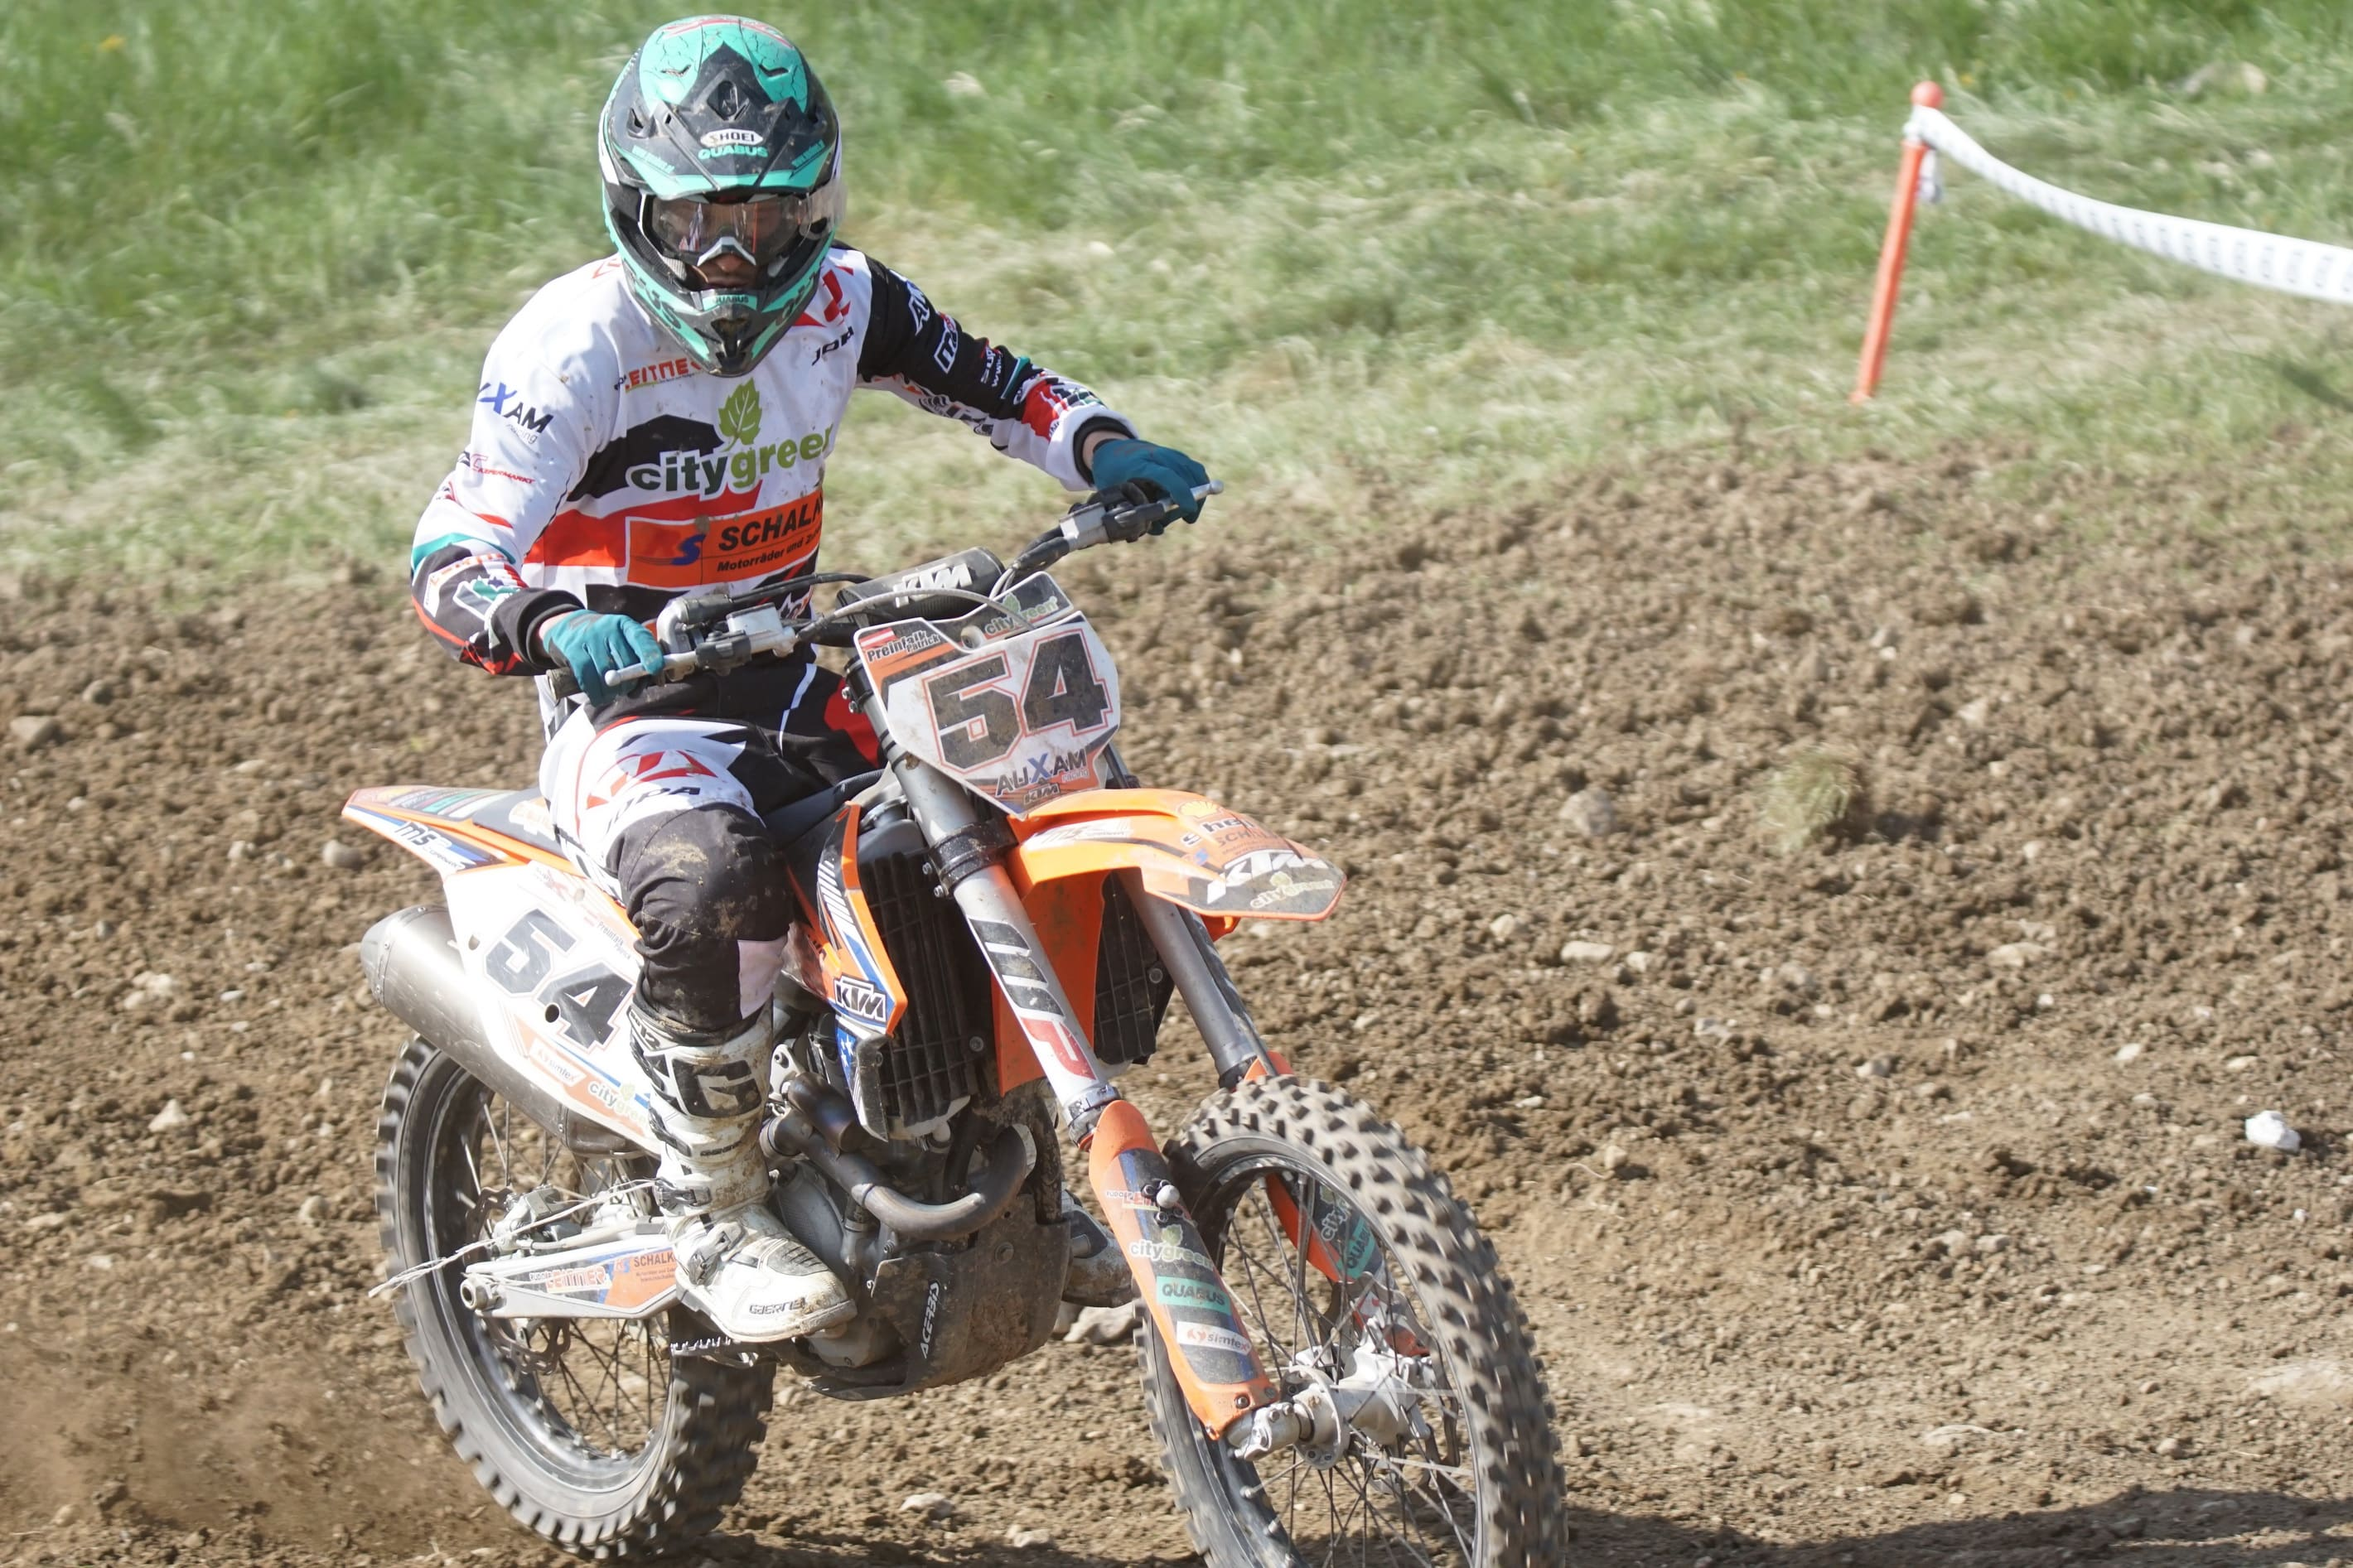 DSC 884_Moto Cross Sittendorf Teil1 am 29.04.2018